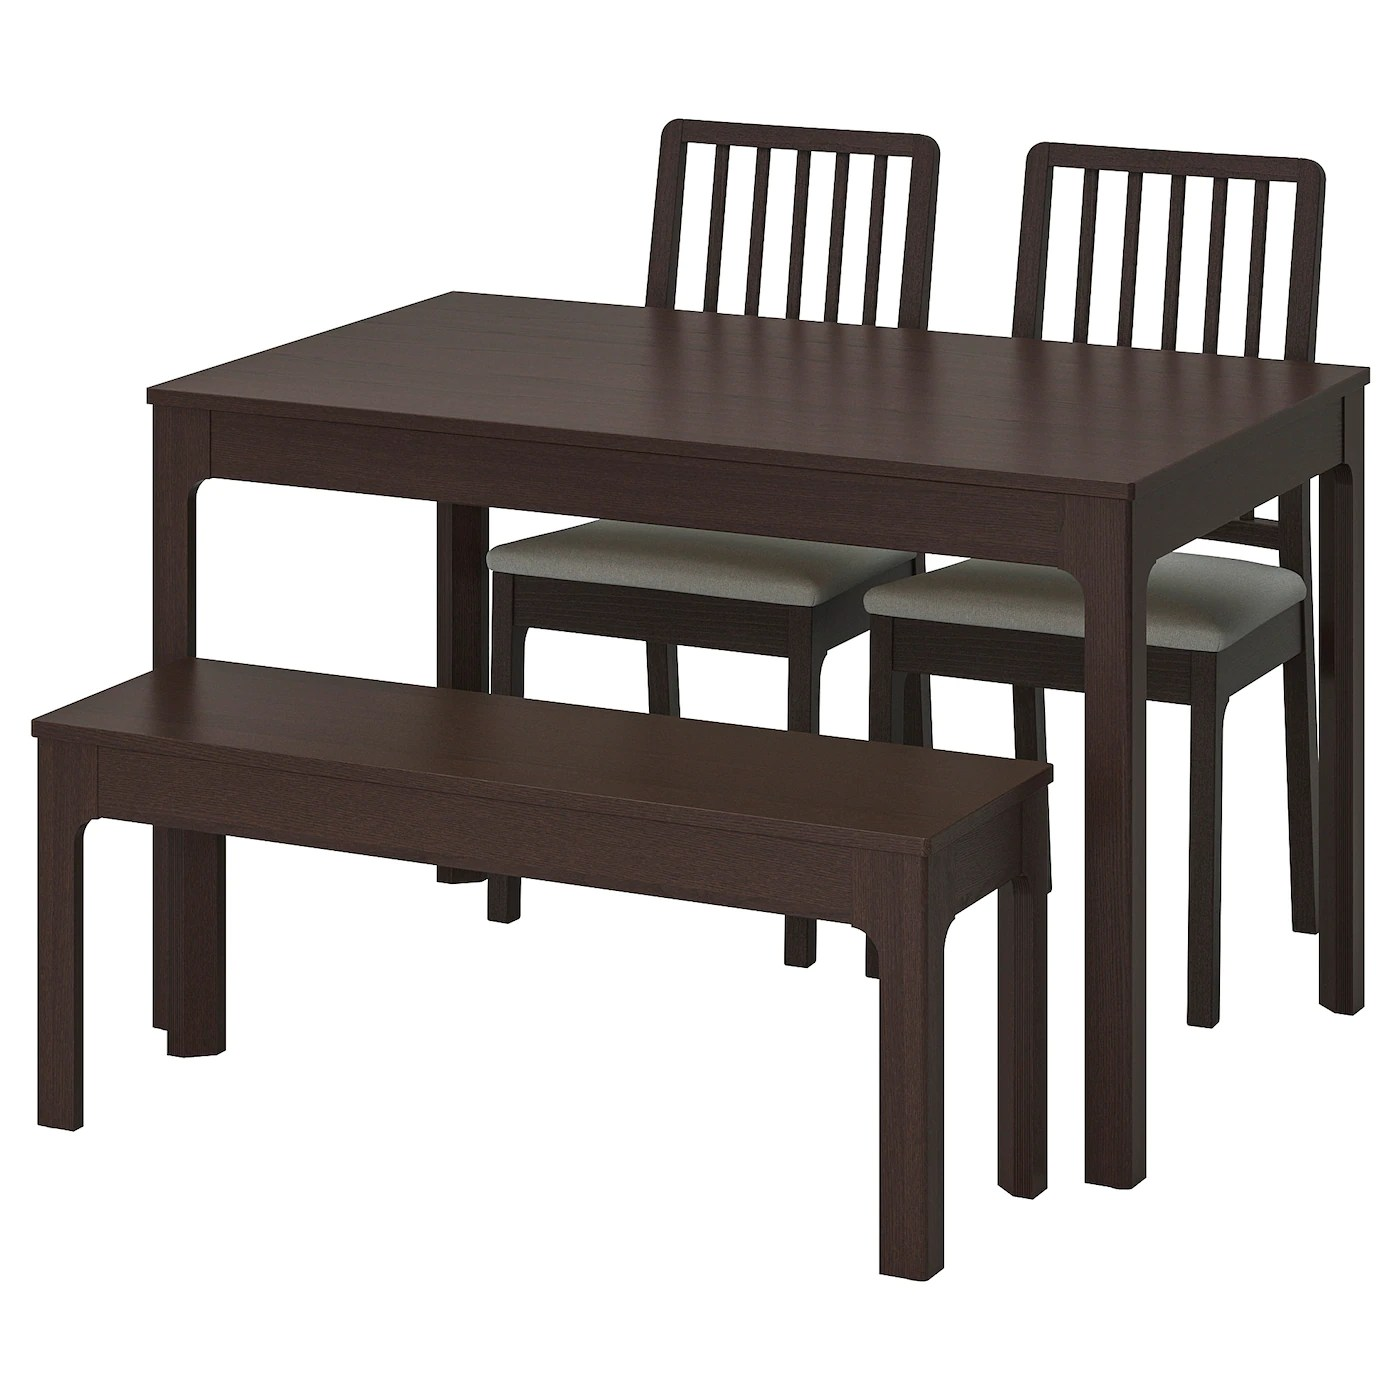 Dining Table With Bench And Chairs Dining Table Sets And Dining Room Sets Ikea